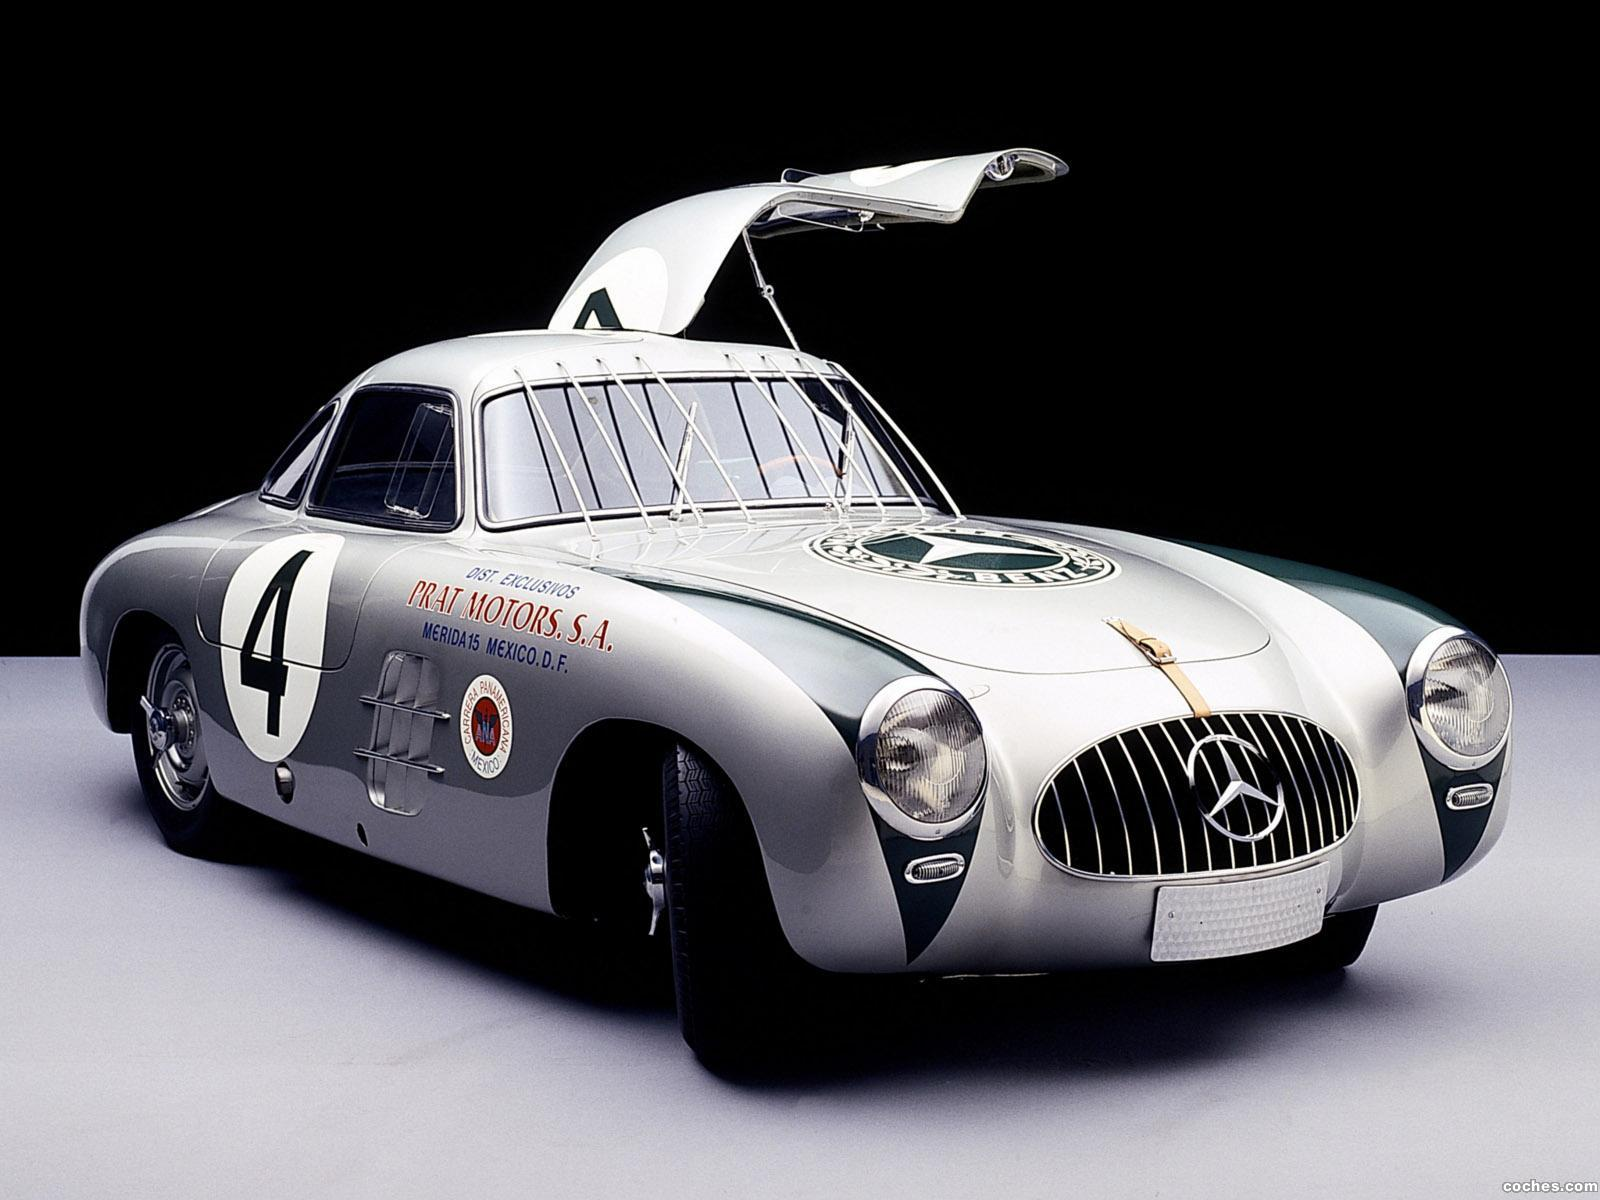 mercedes_300sl-racing-sport-coupe-w194-1952_r4.jpg